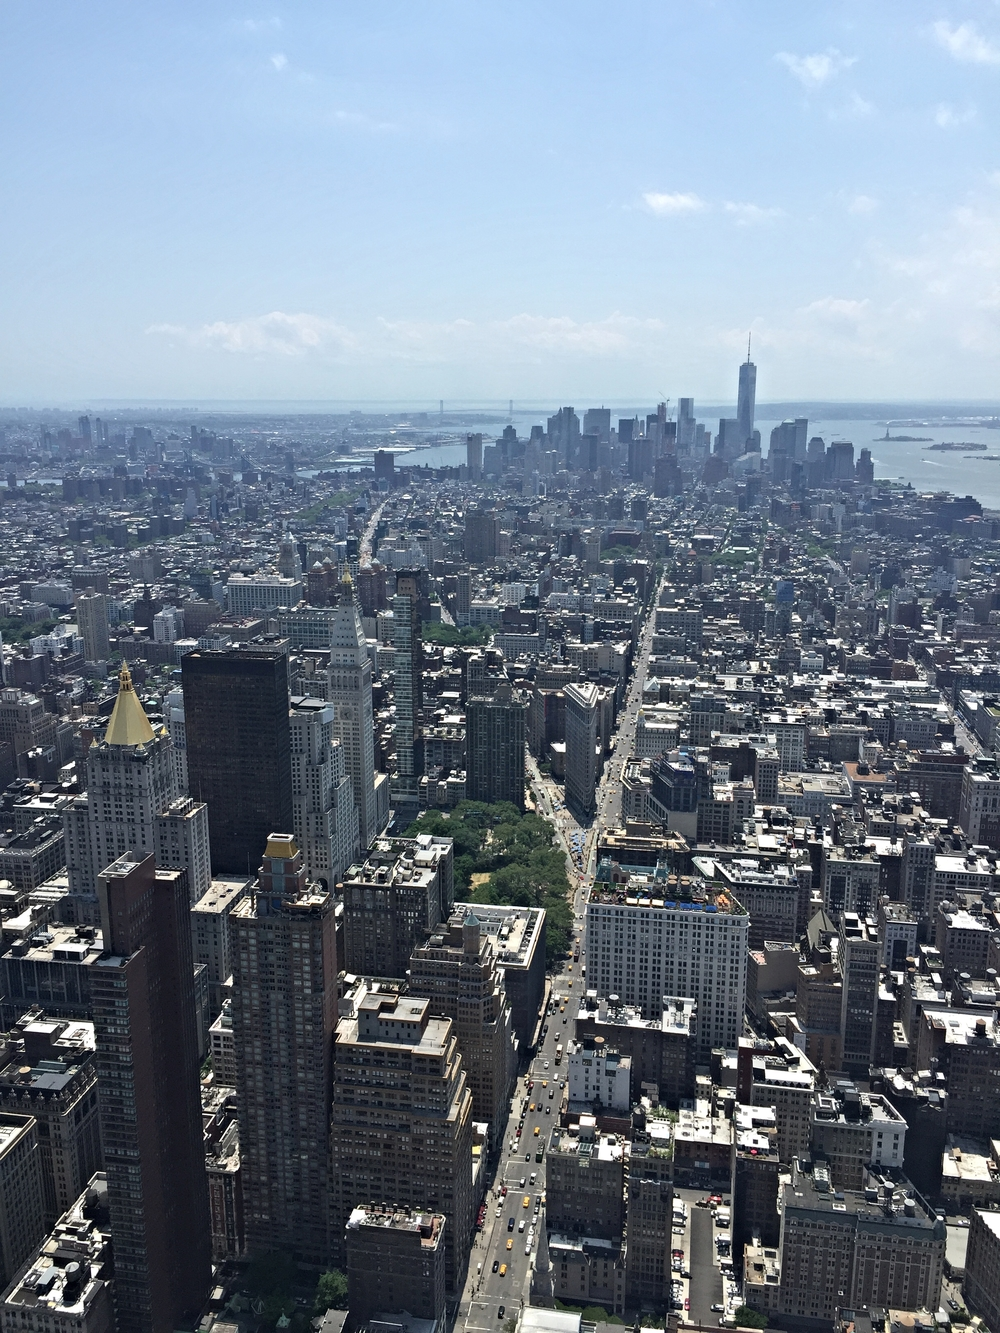 View from the top of the Empire State Building looking south towards financial district.